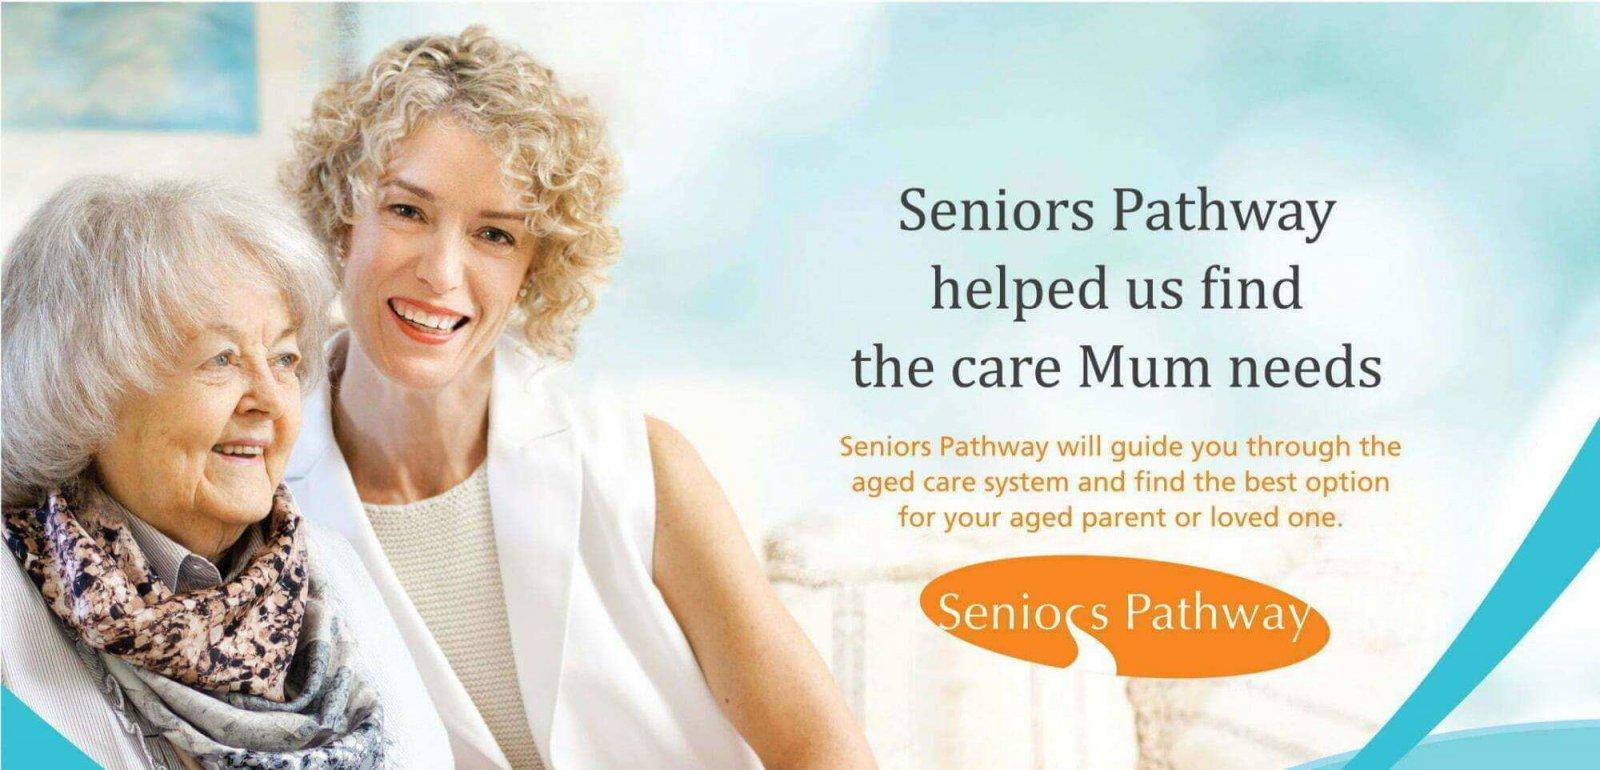 Seniors Pathway - Aged Care Services in South Australia